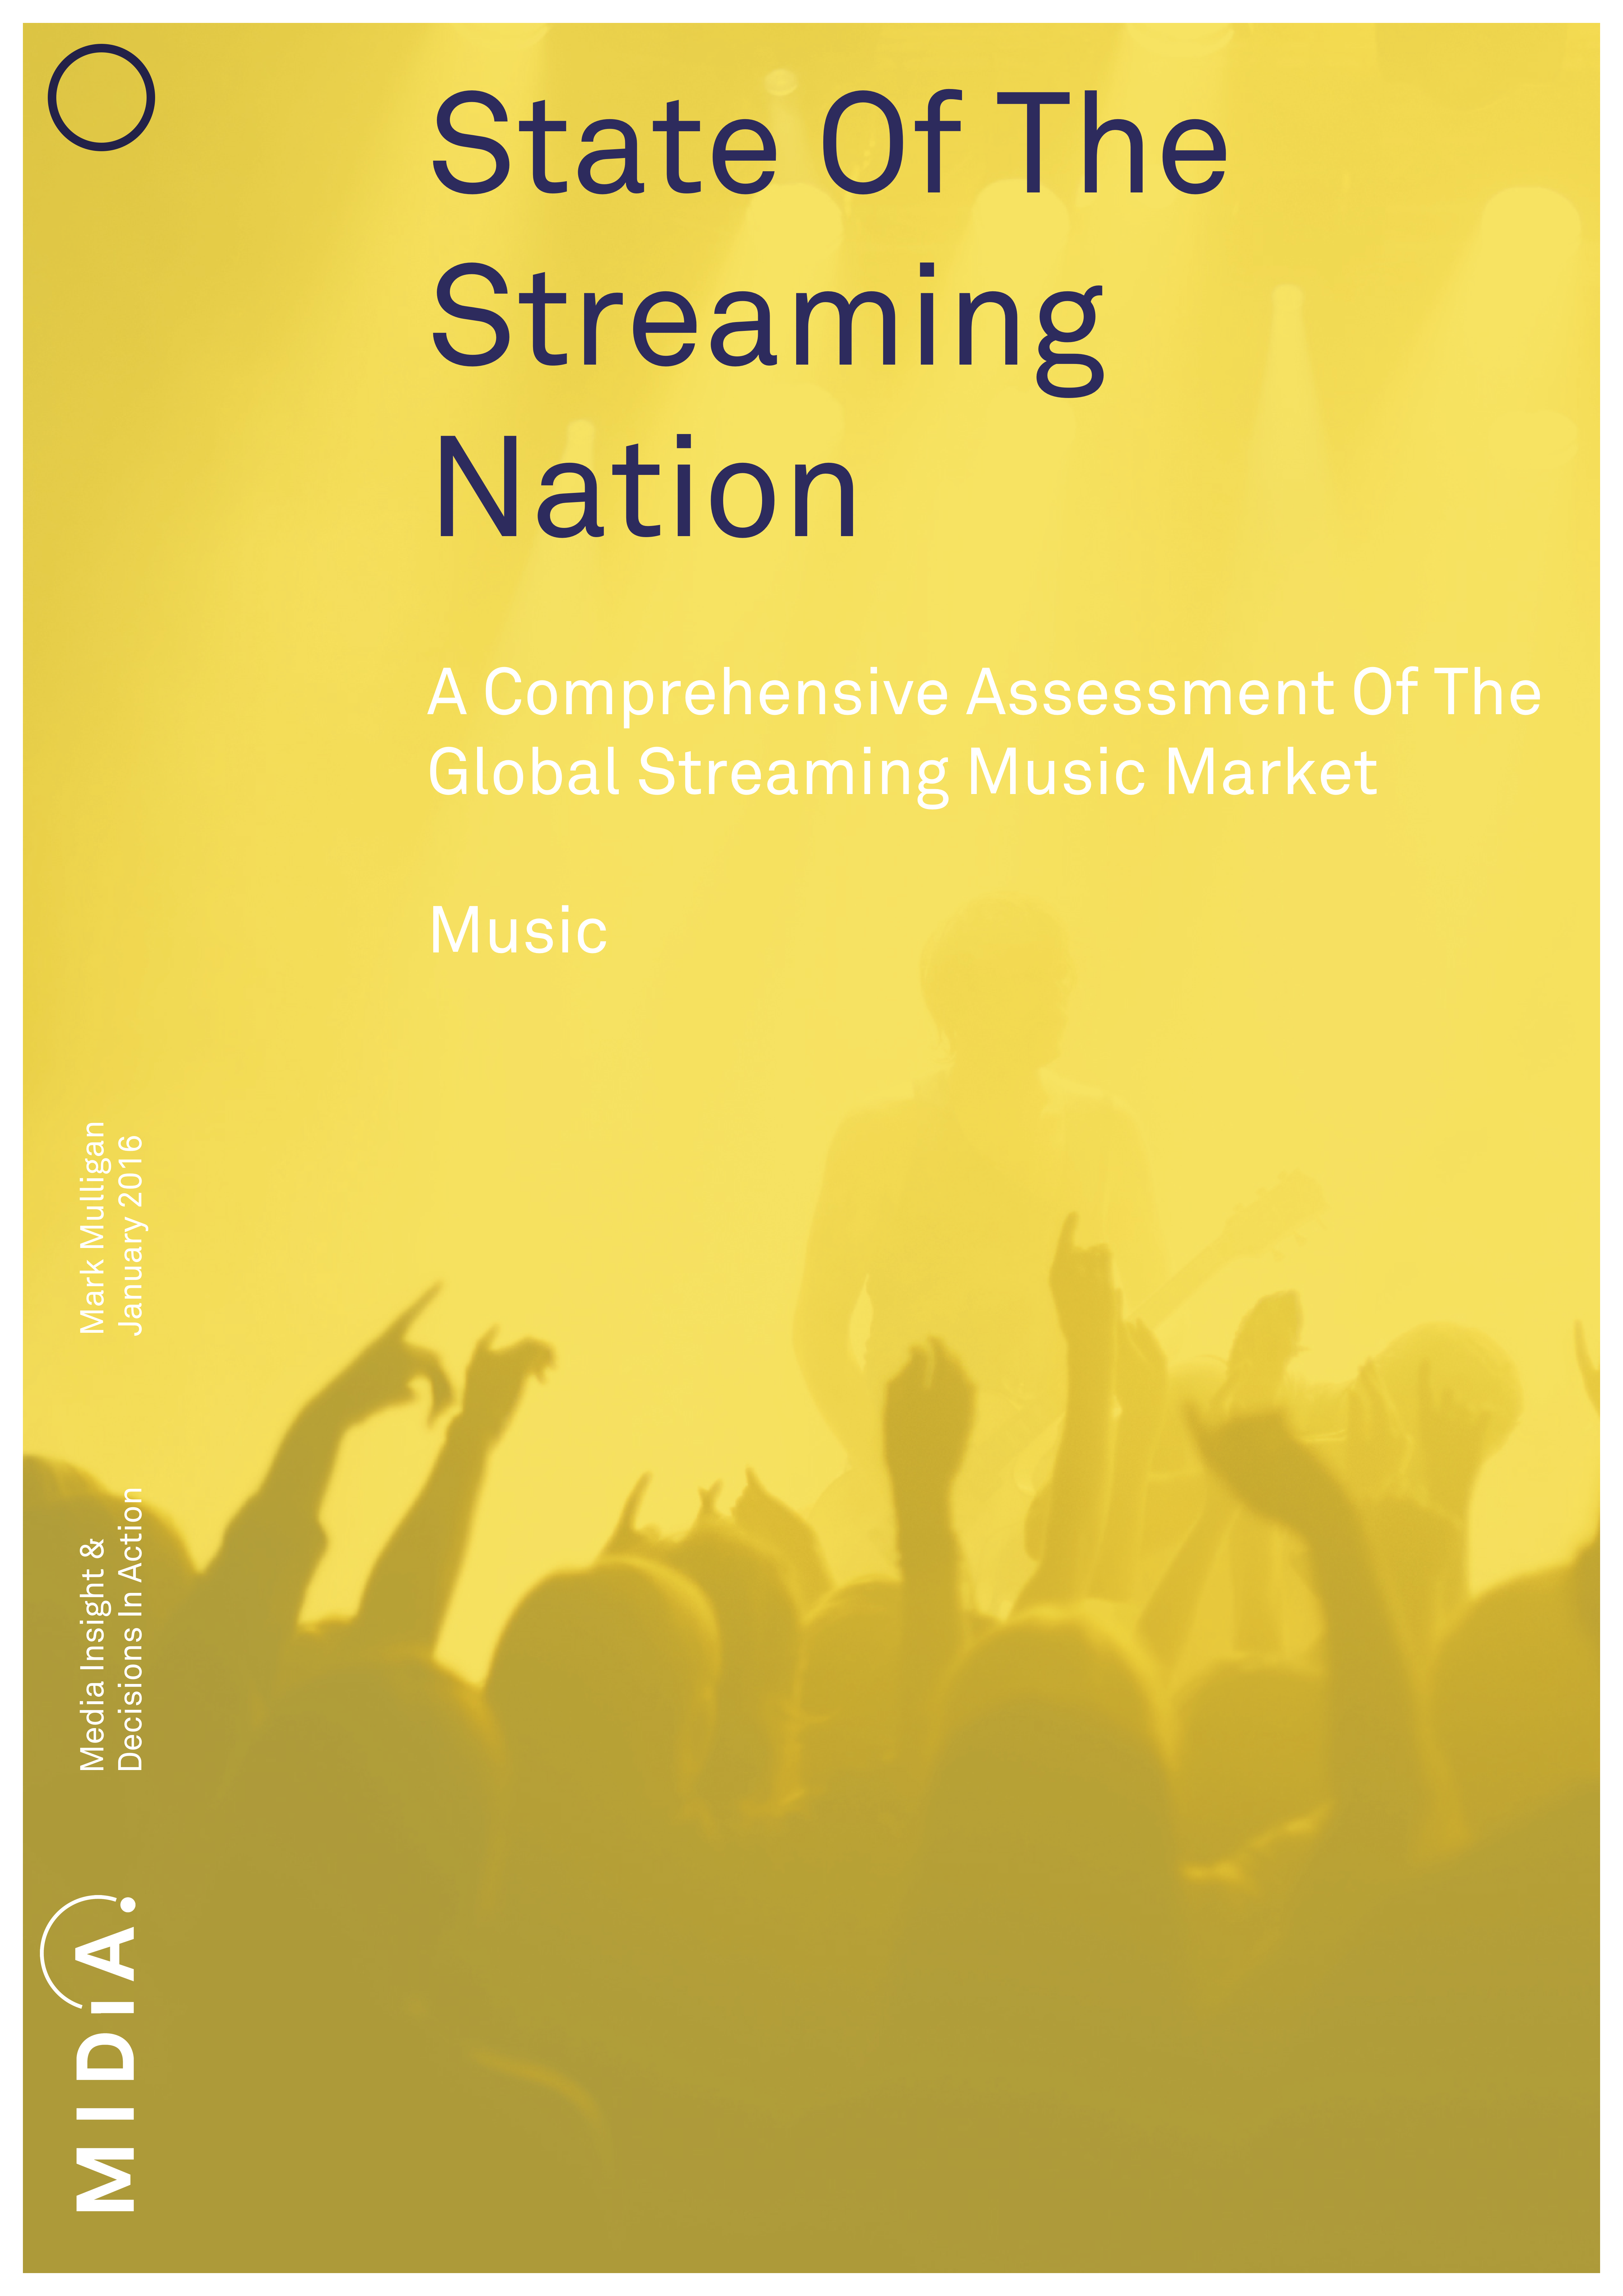 Cover image for State Of The Streaming Nation